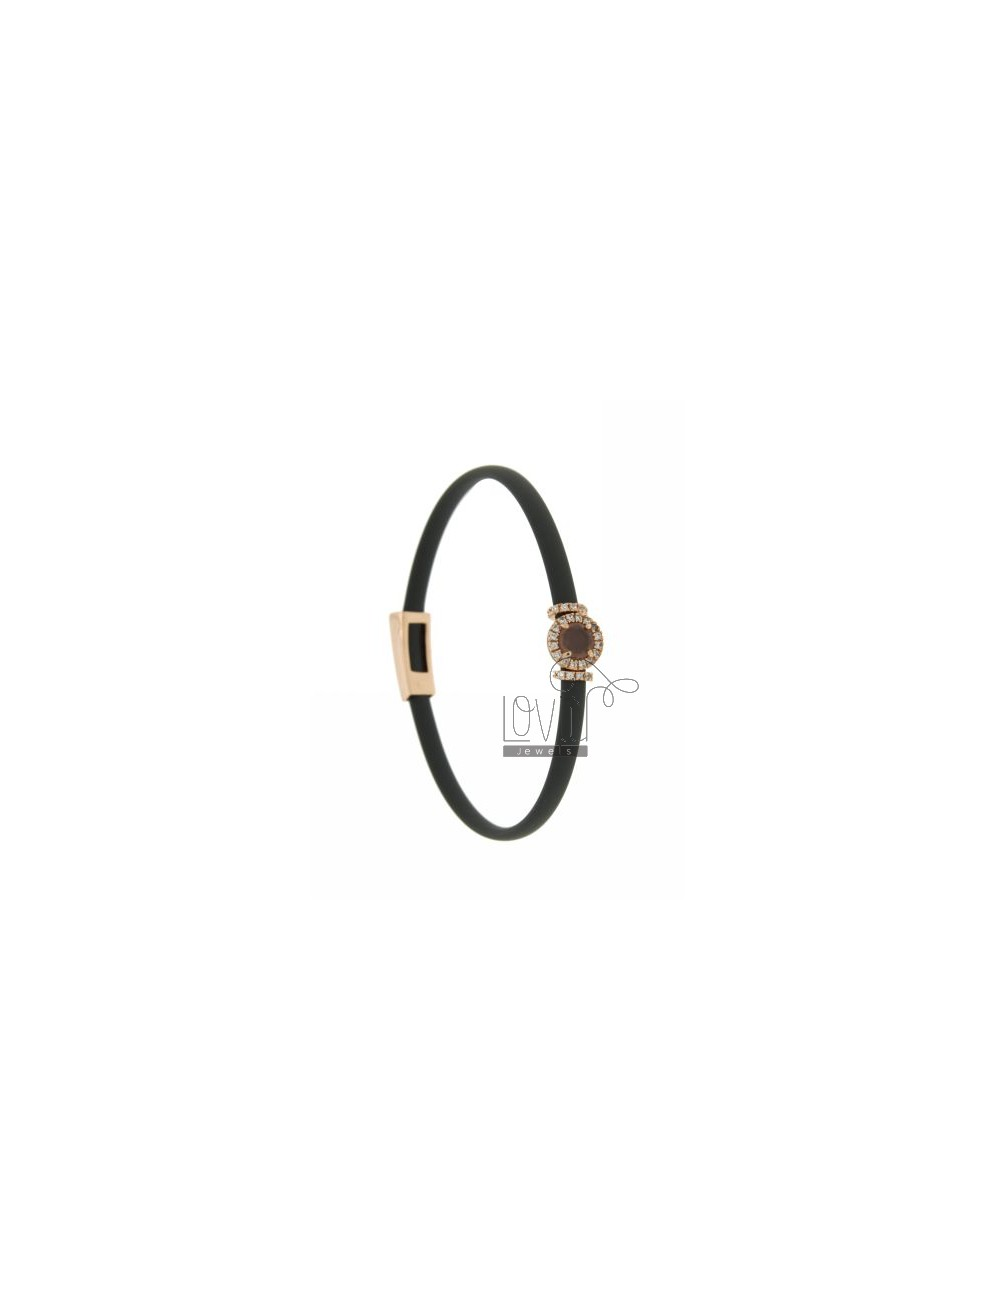 RUBBER BRACELET &39GREY AND APPLICATION ROUND ROSE GOLD PLATED AG TIT 925 ‰, ZIRCONS HYDROTHERMAL VARIOUS COLORS AND STONES